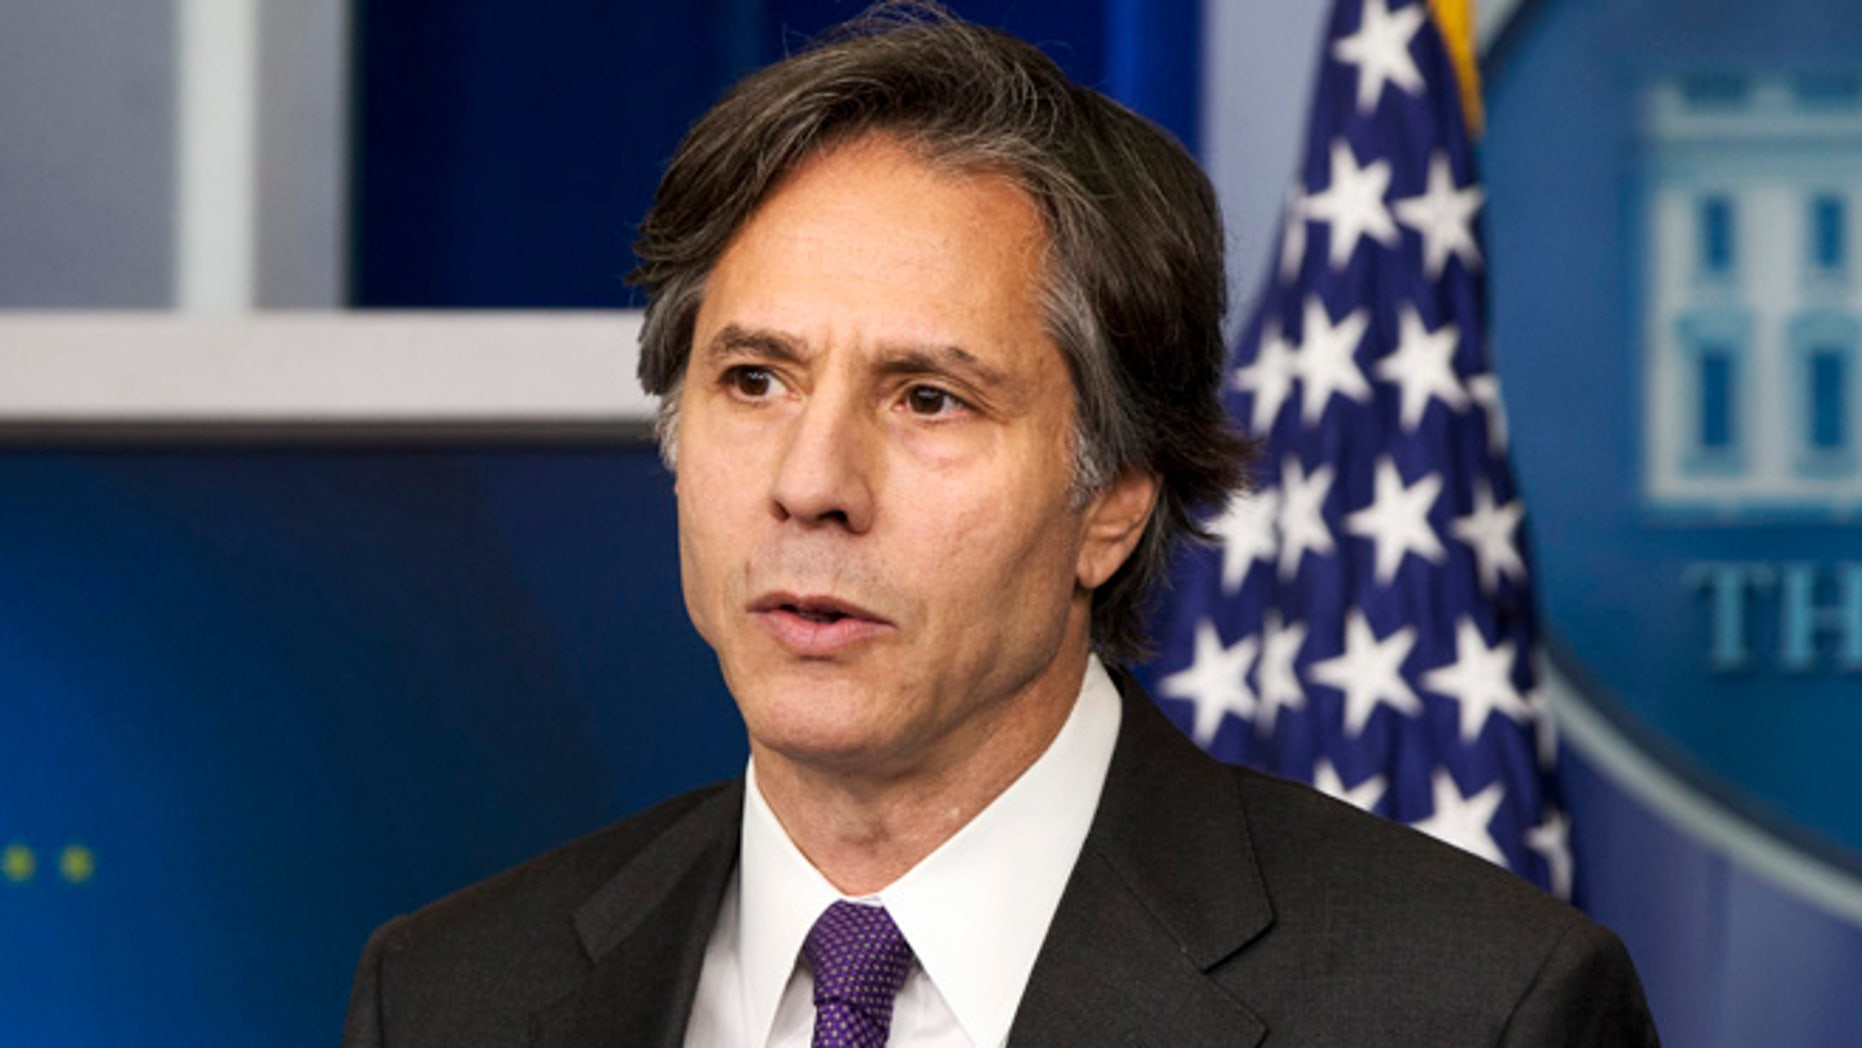 July 28, 2014: Deputy National Security Adviser Tony Blinken speaks about Russia, Ukraine as well as the Middle East conflict during an appearance at the daily press briefing at the White House in Washington.